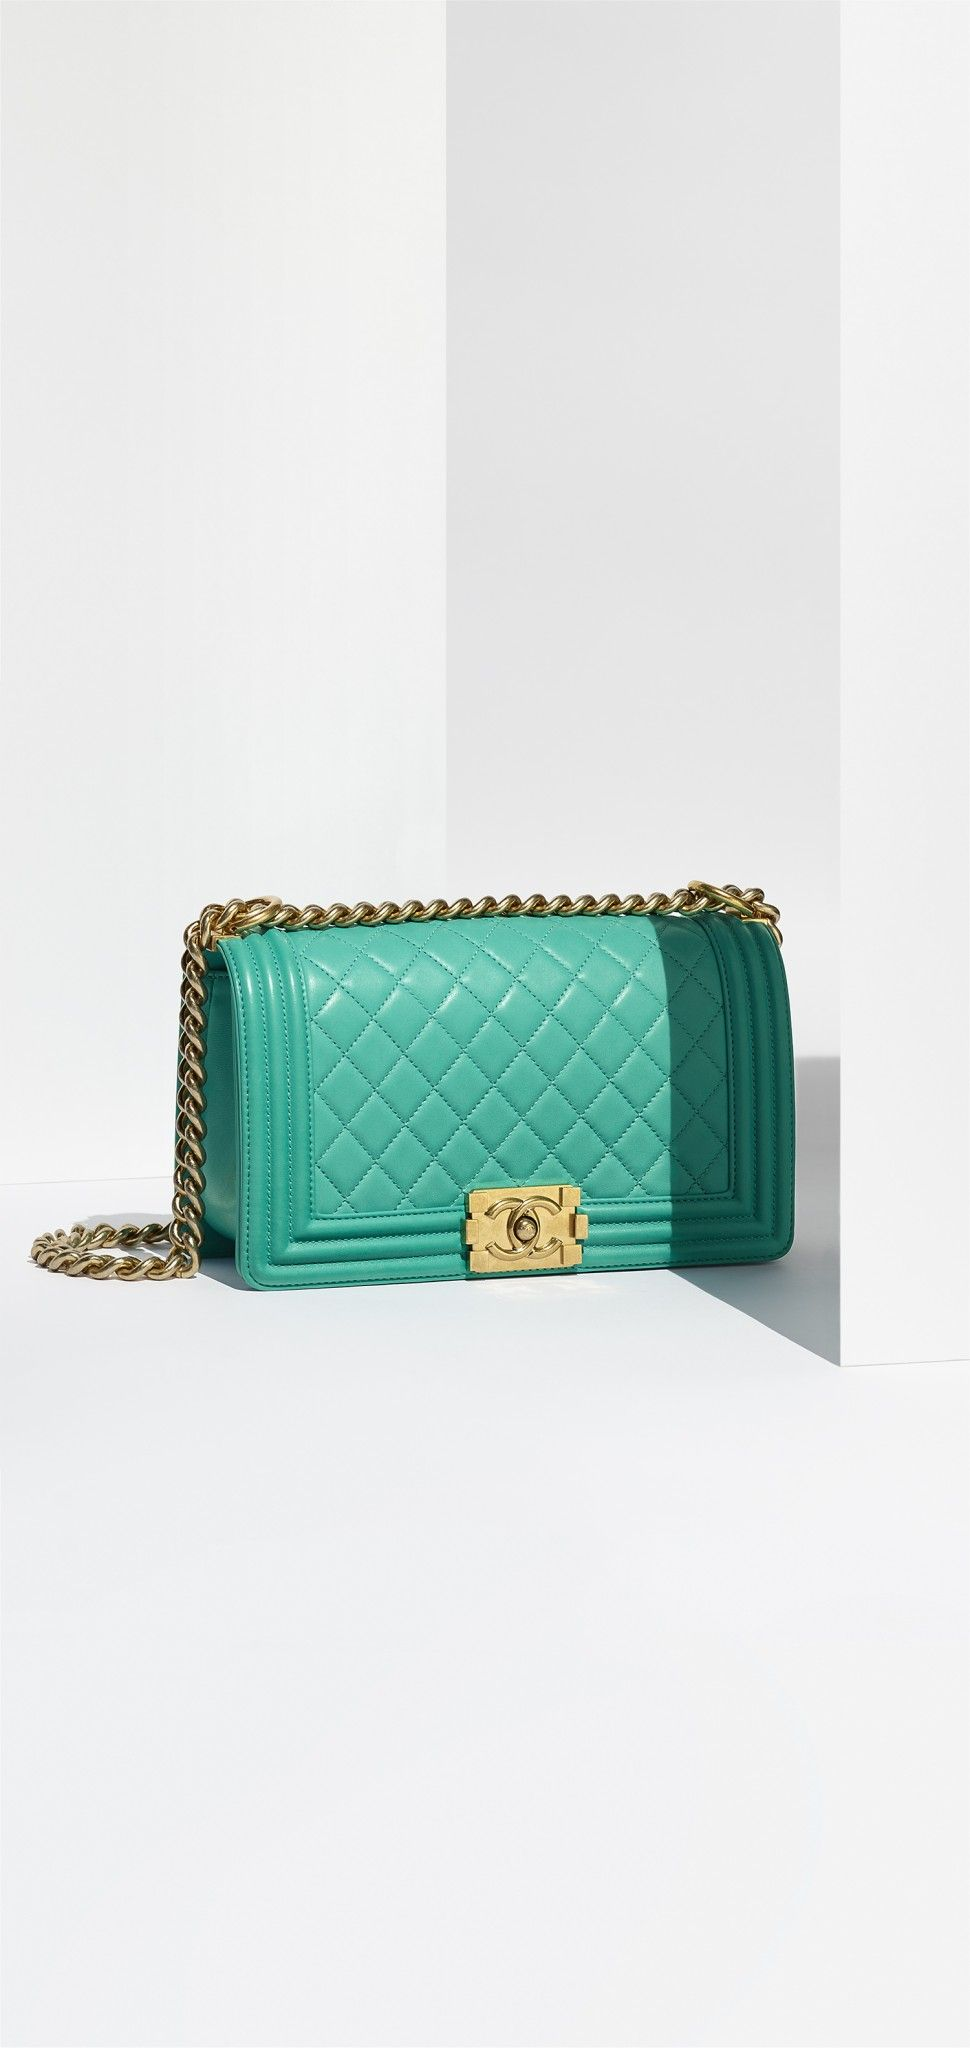 02_turquoise-leather-boy-chanel-bag-a67086-y09939-3b222_1_ld